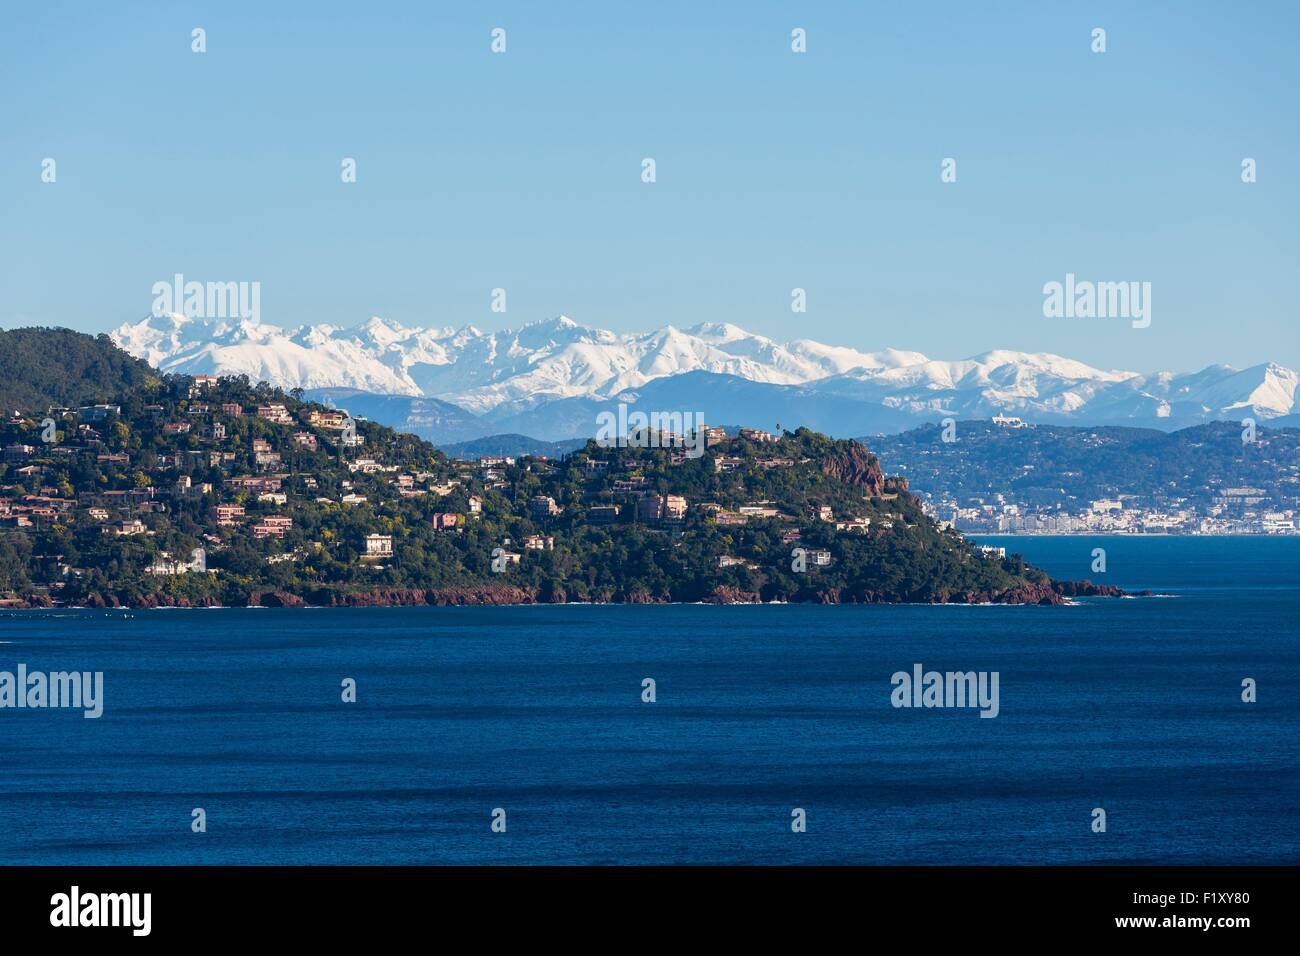 France, Alpes Maritimes, Theoule sur Mer, gulf of Napoule, Cannes and snowy mountains of Mercantour in the background - Stock Image